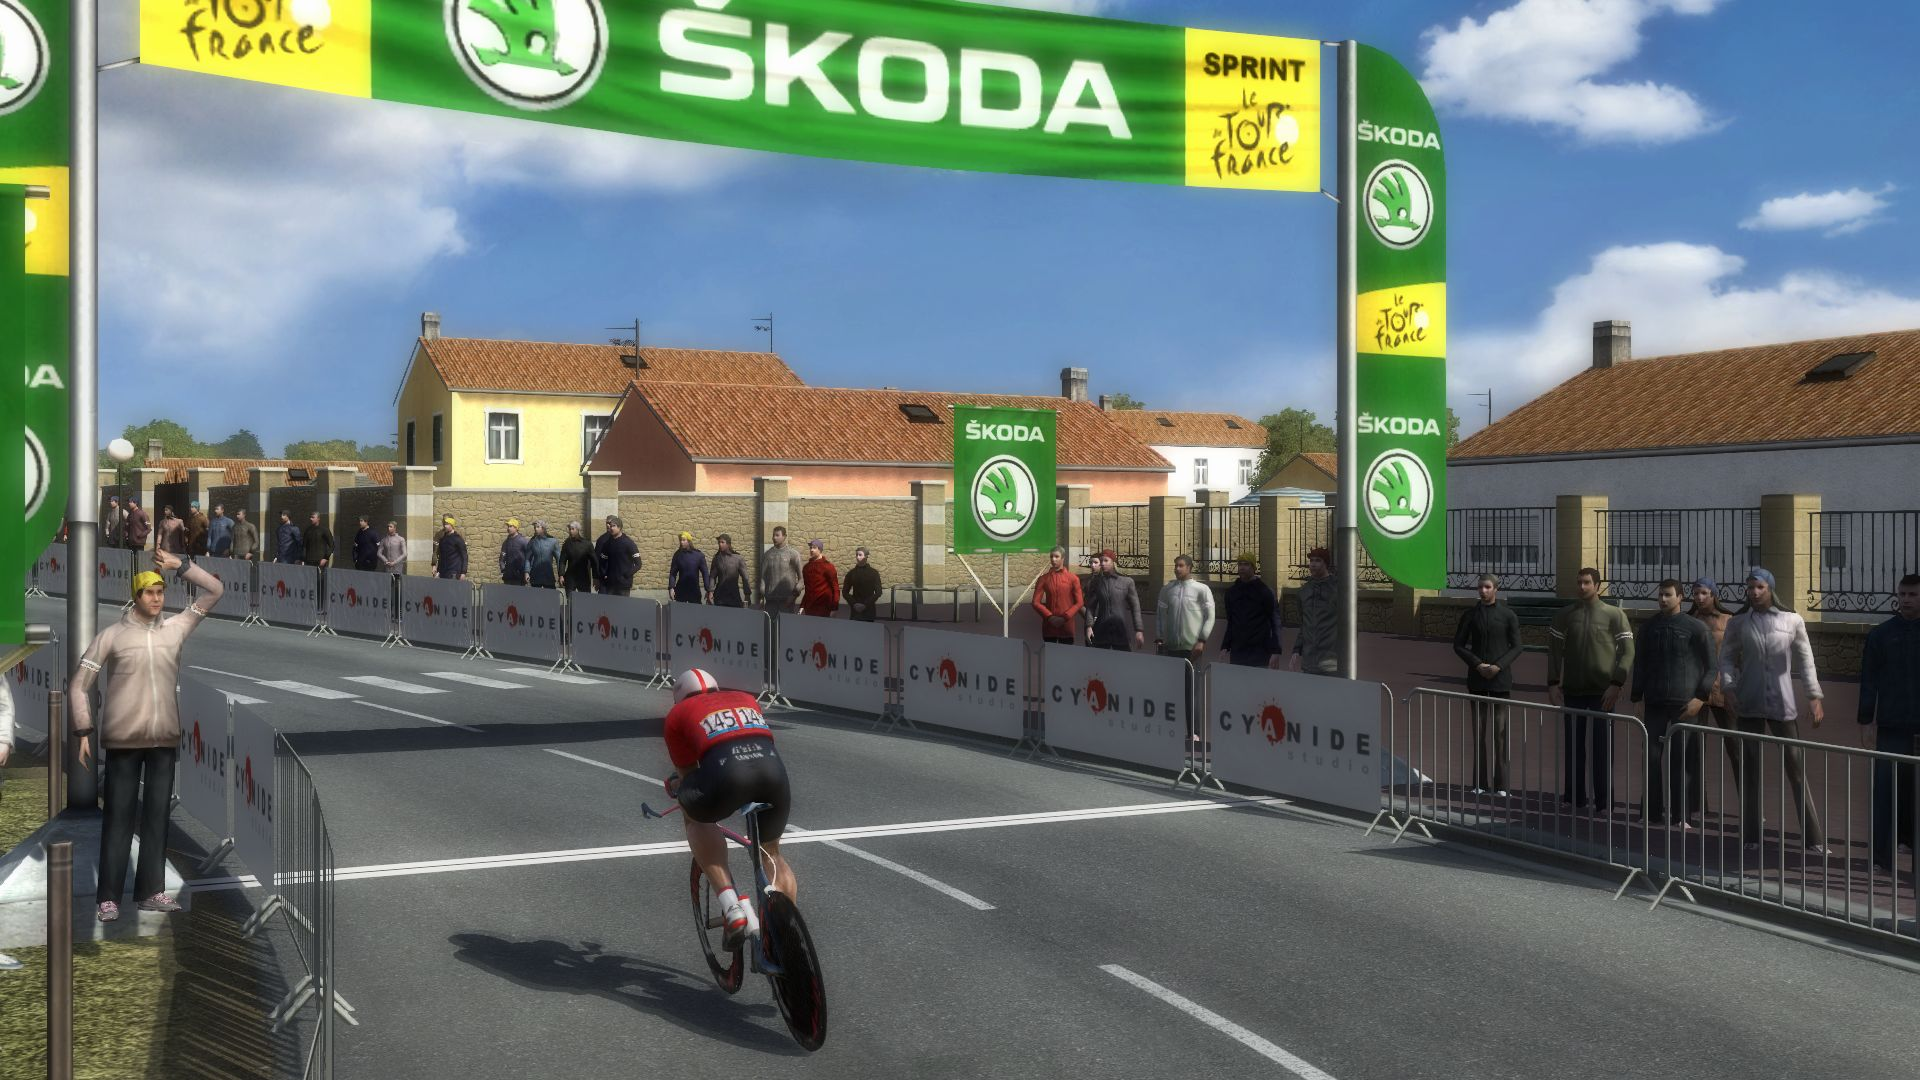 pcmdaily.com/images/mg/2019/Races/HC/Slovenie/mg19_slo_s04_03.jpg